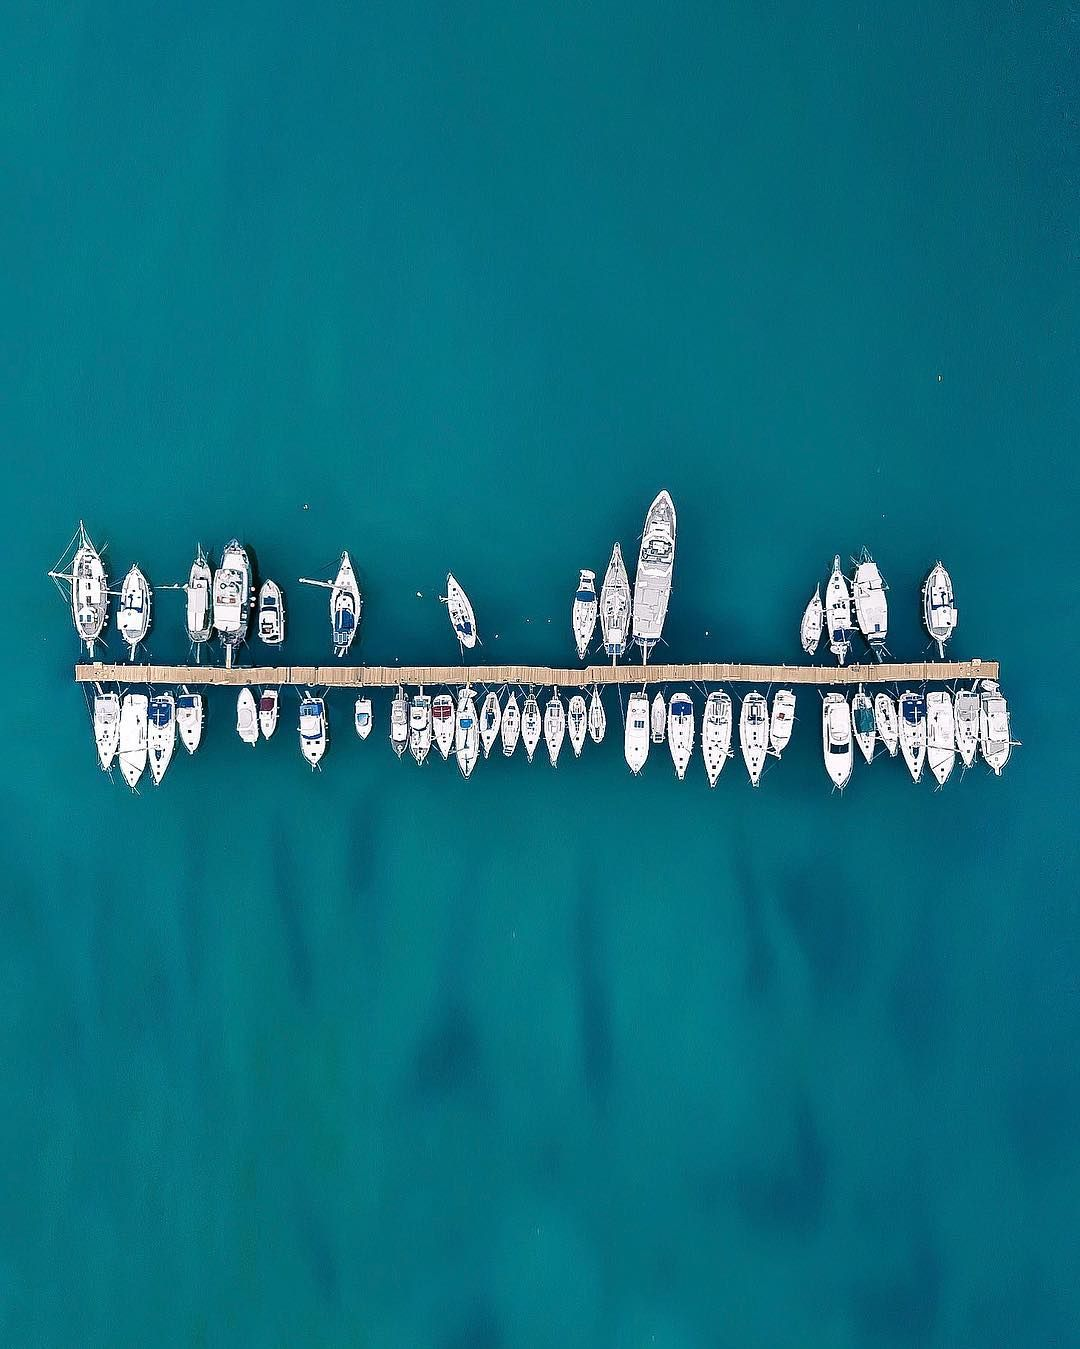 Stunning Symmetry and Patterns: Drone Photography by Costas Spathis # photography | Aerial photography drone, Aerial photography, Drone photography